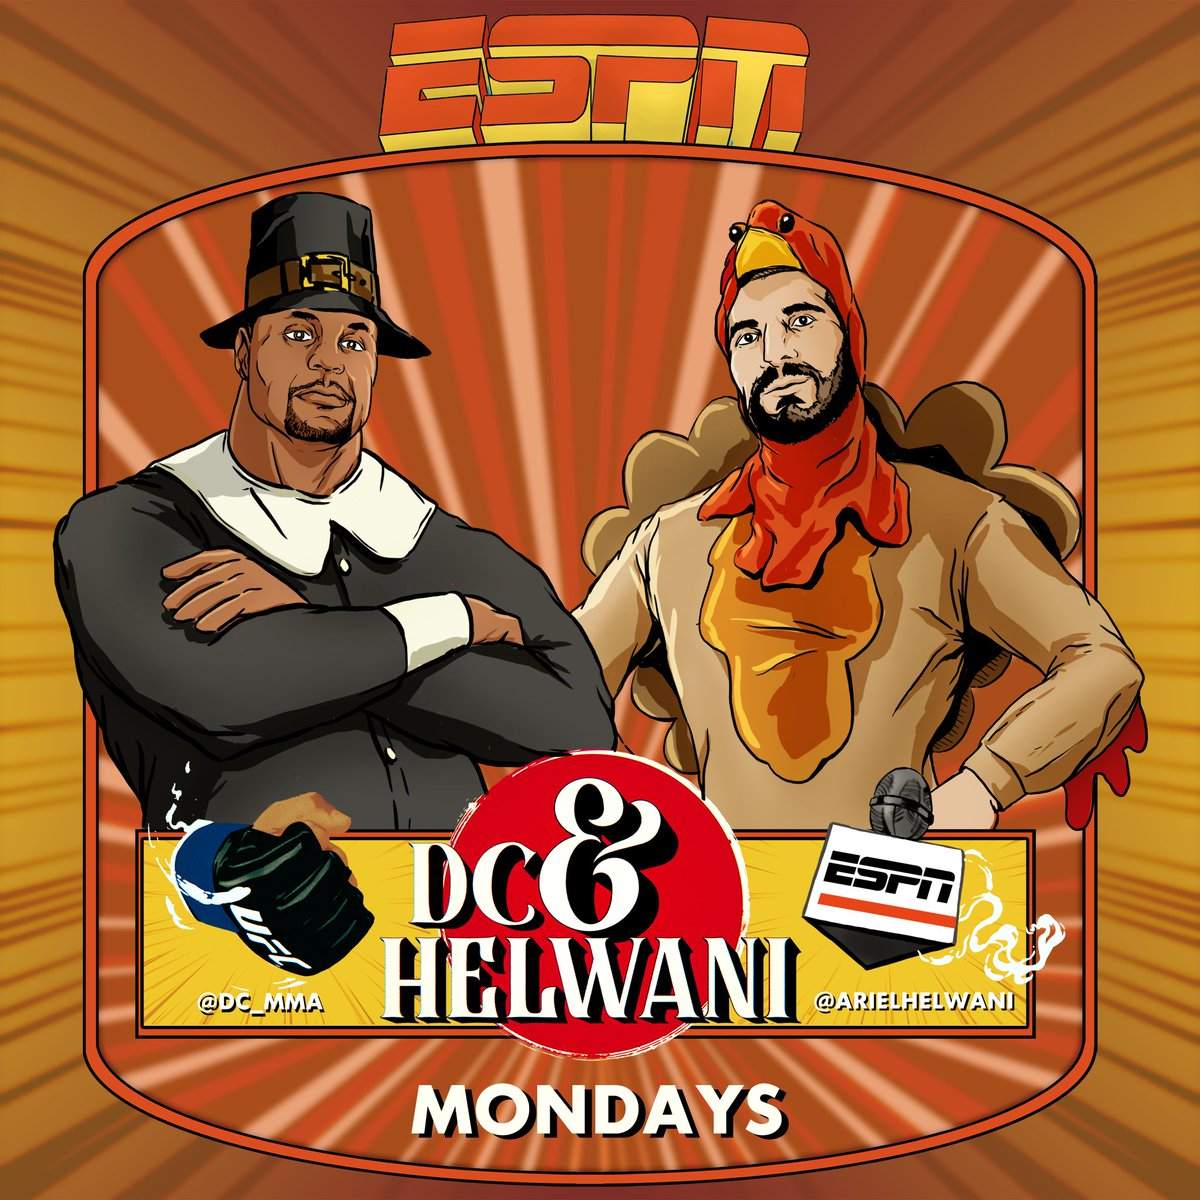 Happy thanksgiving everyone new episode of DC and Helwani is about to be live in 5. We talk @ufc 255 and so much more. Tune in